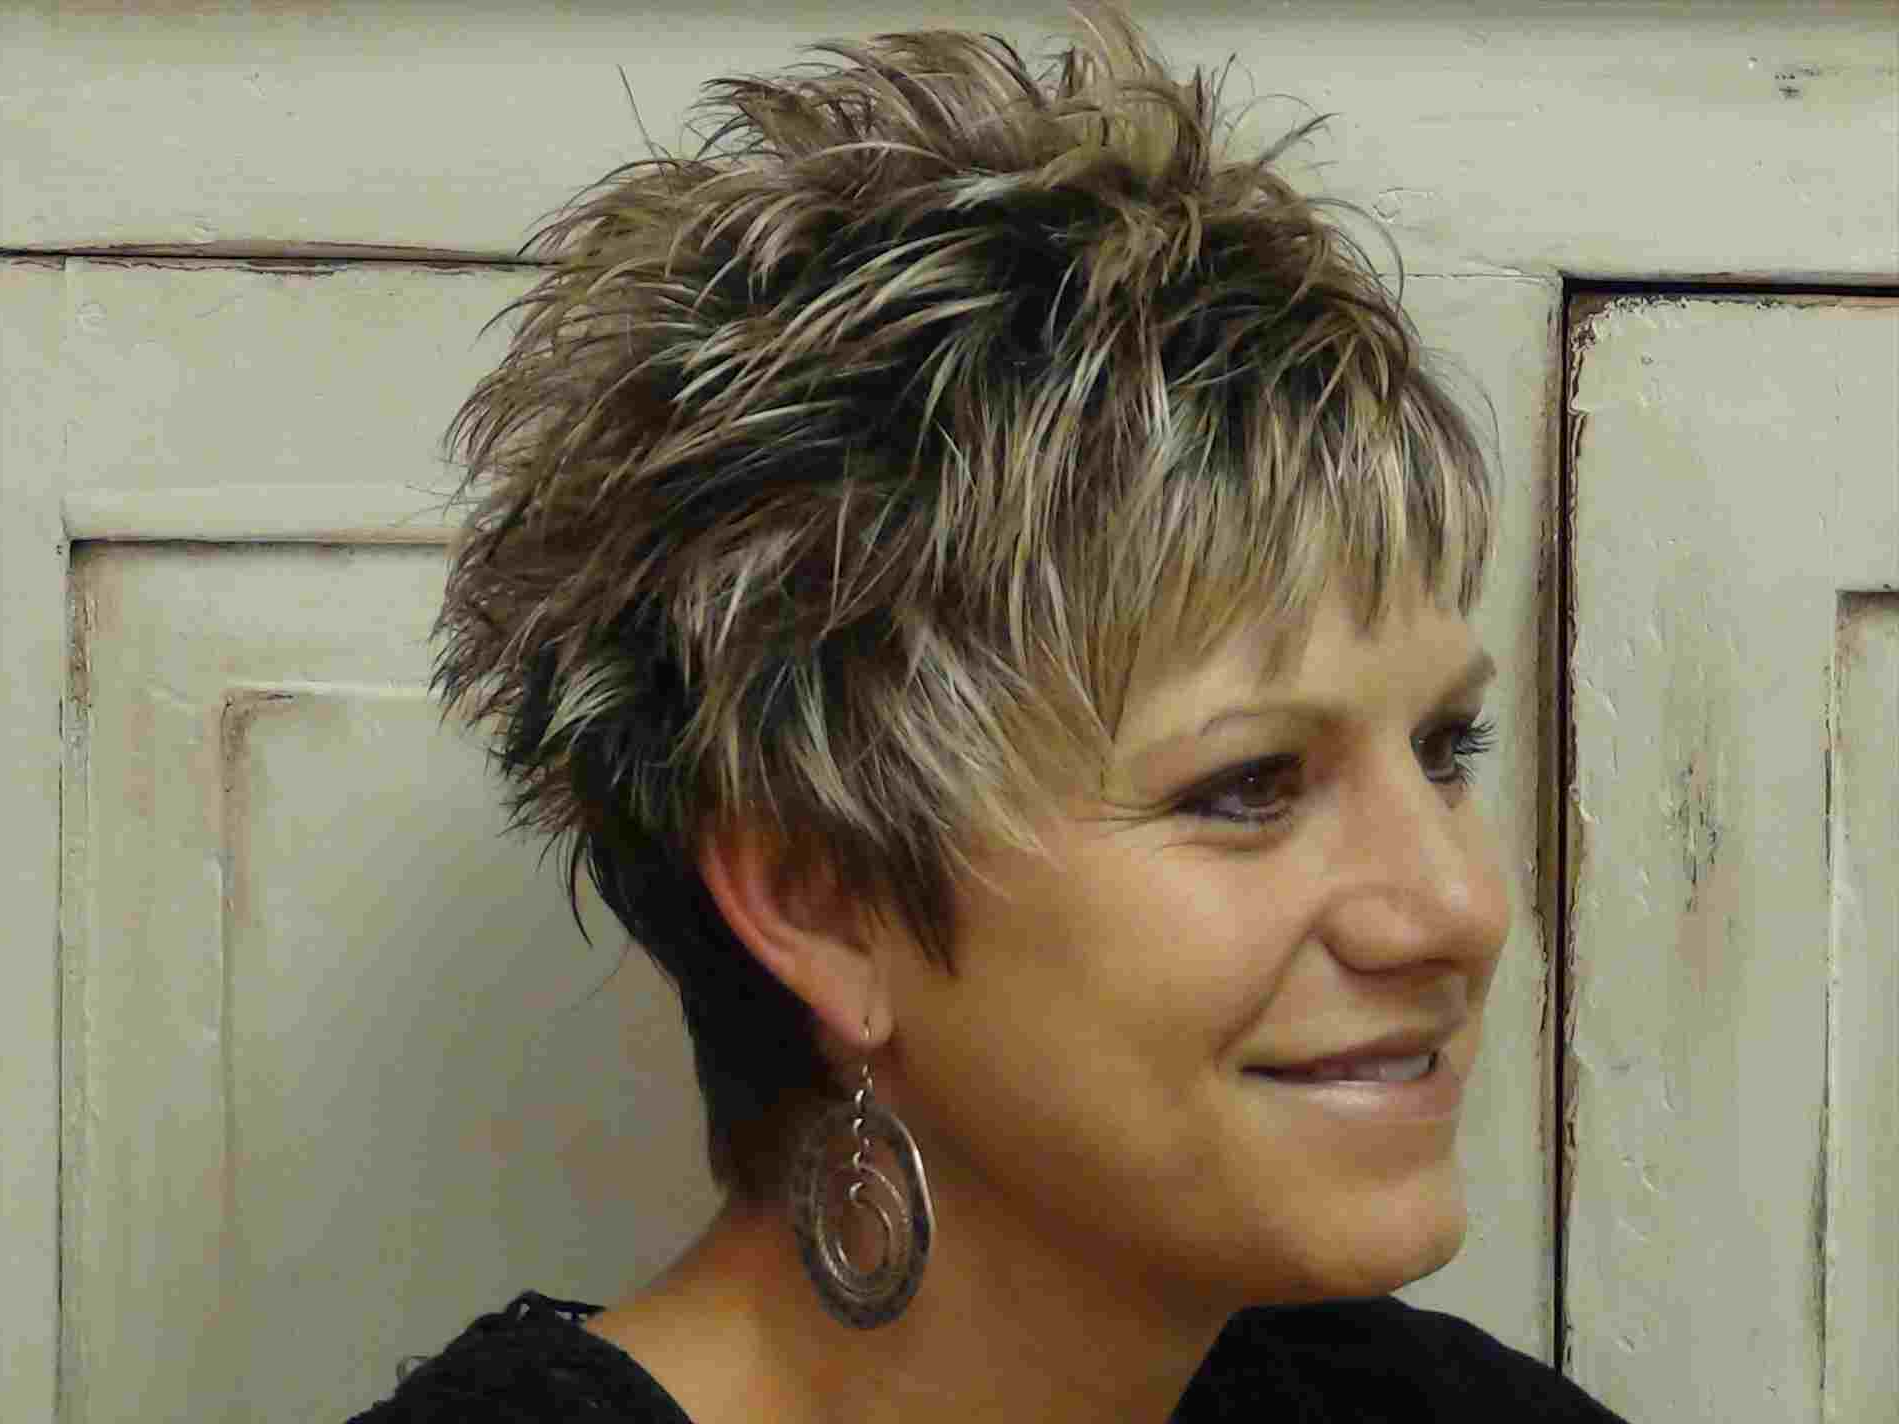 Short Ideas On Rhpinterestcom Haircuts Short Edgy Hairstyles For Regarding Messy Short Haircuts For Women (View 25 of 25)